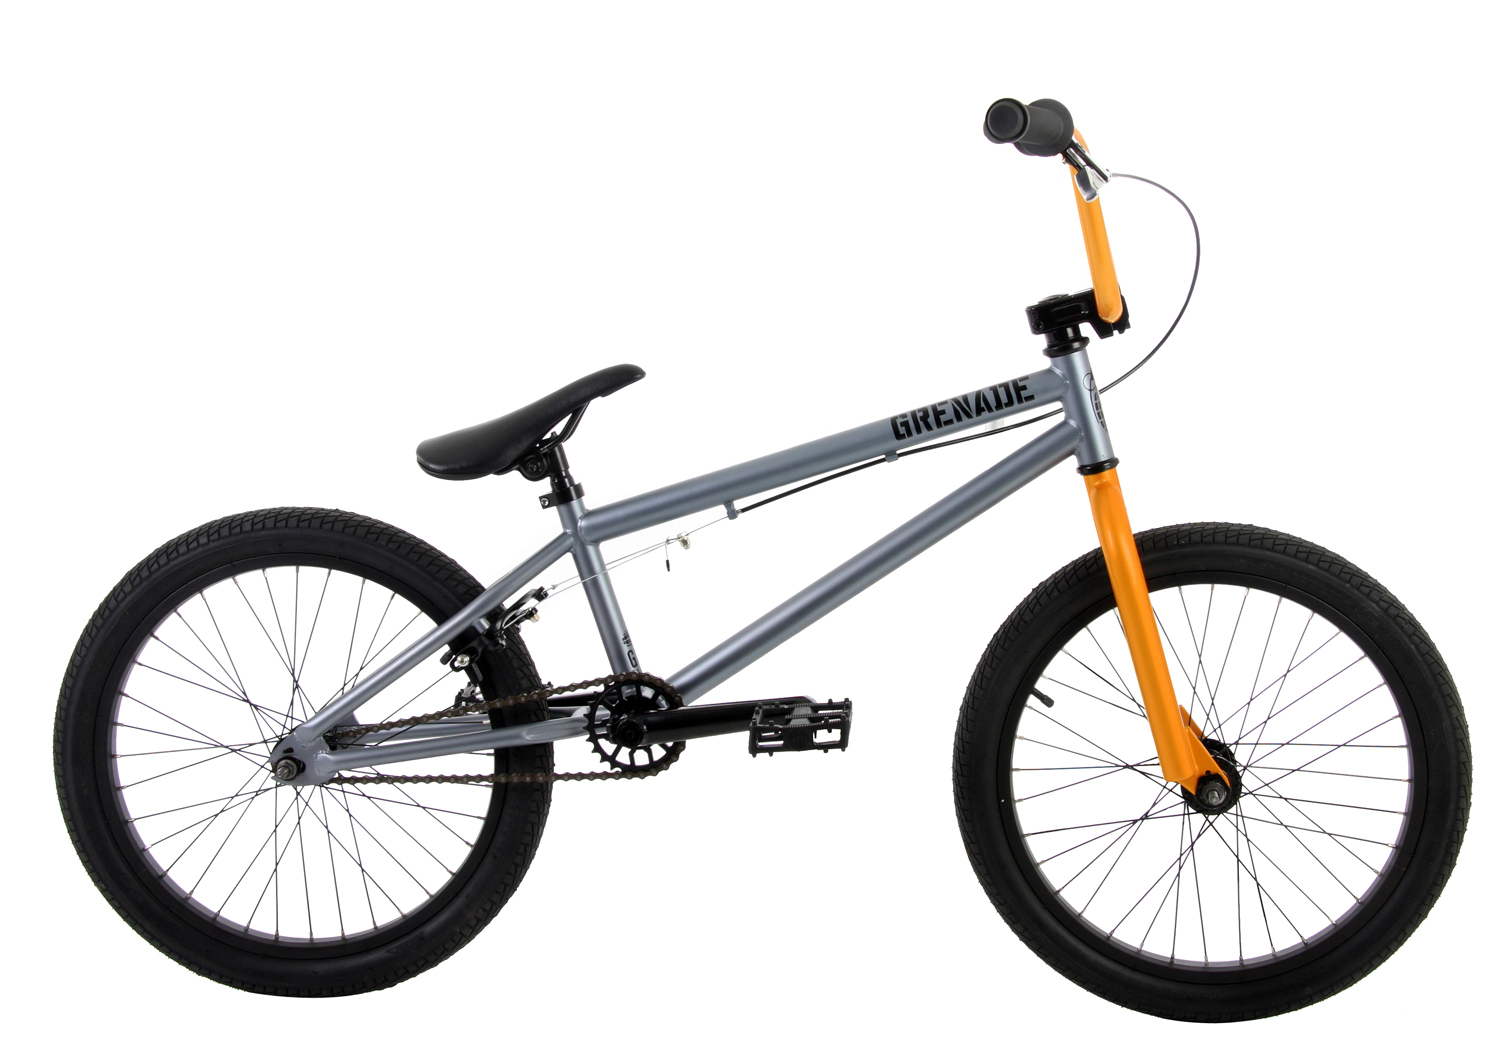 "BMX The 2013 Grenade B2 is the third in Grenade''s lineup of ""entry level"" street/trail BMX bikes, but as you can see, the B2 is not your standard entry level bike with its Cromoly Main Tubes and 25/9 Micro Drive System and its features do not stop there. The B2 features Framed Grips, Framed Fuse Alloy Stem, Framed Pipe Bomb 175mm Tubular Cromoly Cranks with Cromoly Spindle, Framed 25 Tooth Alloy Sprocket, Framed Platform Pedals, Framed Turbine 12mm Alloy Hubset with a 9 Tooth Driver in the rear, and Framed Alloy Rims. An additional feature worth mentioning is the fact that Grenade uses heavy duty 6mm think 14mm dropouts on all of its frames, allowing riders to easily upgrade to wheels with 14mm axles without having to purchase a new frame or fork. The Grenade B2 Bike is as at home on the street as it is on the trails, with its agile but stable geometry and its quality packed components.* Frame: Chromoly main tubes; Hi-Ten Steel * Forks: Hi-Ten Steel * Handlebars: Hi-Ten Steel; 8"" rise * Grips: Grenade Grips * Stem: Fuse Alloy * Headset: Grenade headset * Brake Lever: Grenade Alloy * Brake: Greande Alloy U brake * Cranks: Chromoly; 175mm; Chromoly spindle * Bottom Bracket: Unsealed; American * Sprocket: Alloy; 25T * Chain: KMC Z410 * Pedals: Grenade Platform Pedals * Front Hub: Turbine Alloy ; 3/8""; 36H * Rear Hub: Turbine Alloy; 12mm; 36H; 9T driver * Rims: Alloy * Tires: Grenade -Front: 20"" x 2.125"" -Rear: 20"" x 2.125"" * Seat/Post: 1pc seat and post combo * Clamp: Alloy * Top Tube: 20.5"" * Stand Over: 8"" * Seat Tube: 9.5"" * Head Tube Angle: 74 degrees * Seat Tube Angle: 71 degrees * Chainstay: 14"" * BB Height: 11.6"" * Wheelbase: 36.25"" * Weight: 26 lbs 9 oz * Note: These Grenade BMX bikes come without decals applied. Each bike is shipped with a decal packet, containing a number of decals of different styles and colors. This allows the rider to customize the bike to their liking. - $237.95"